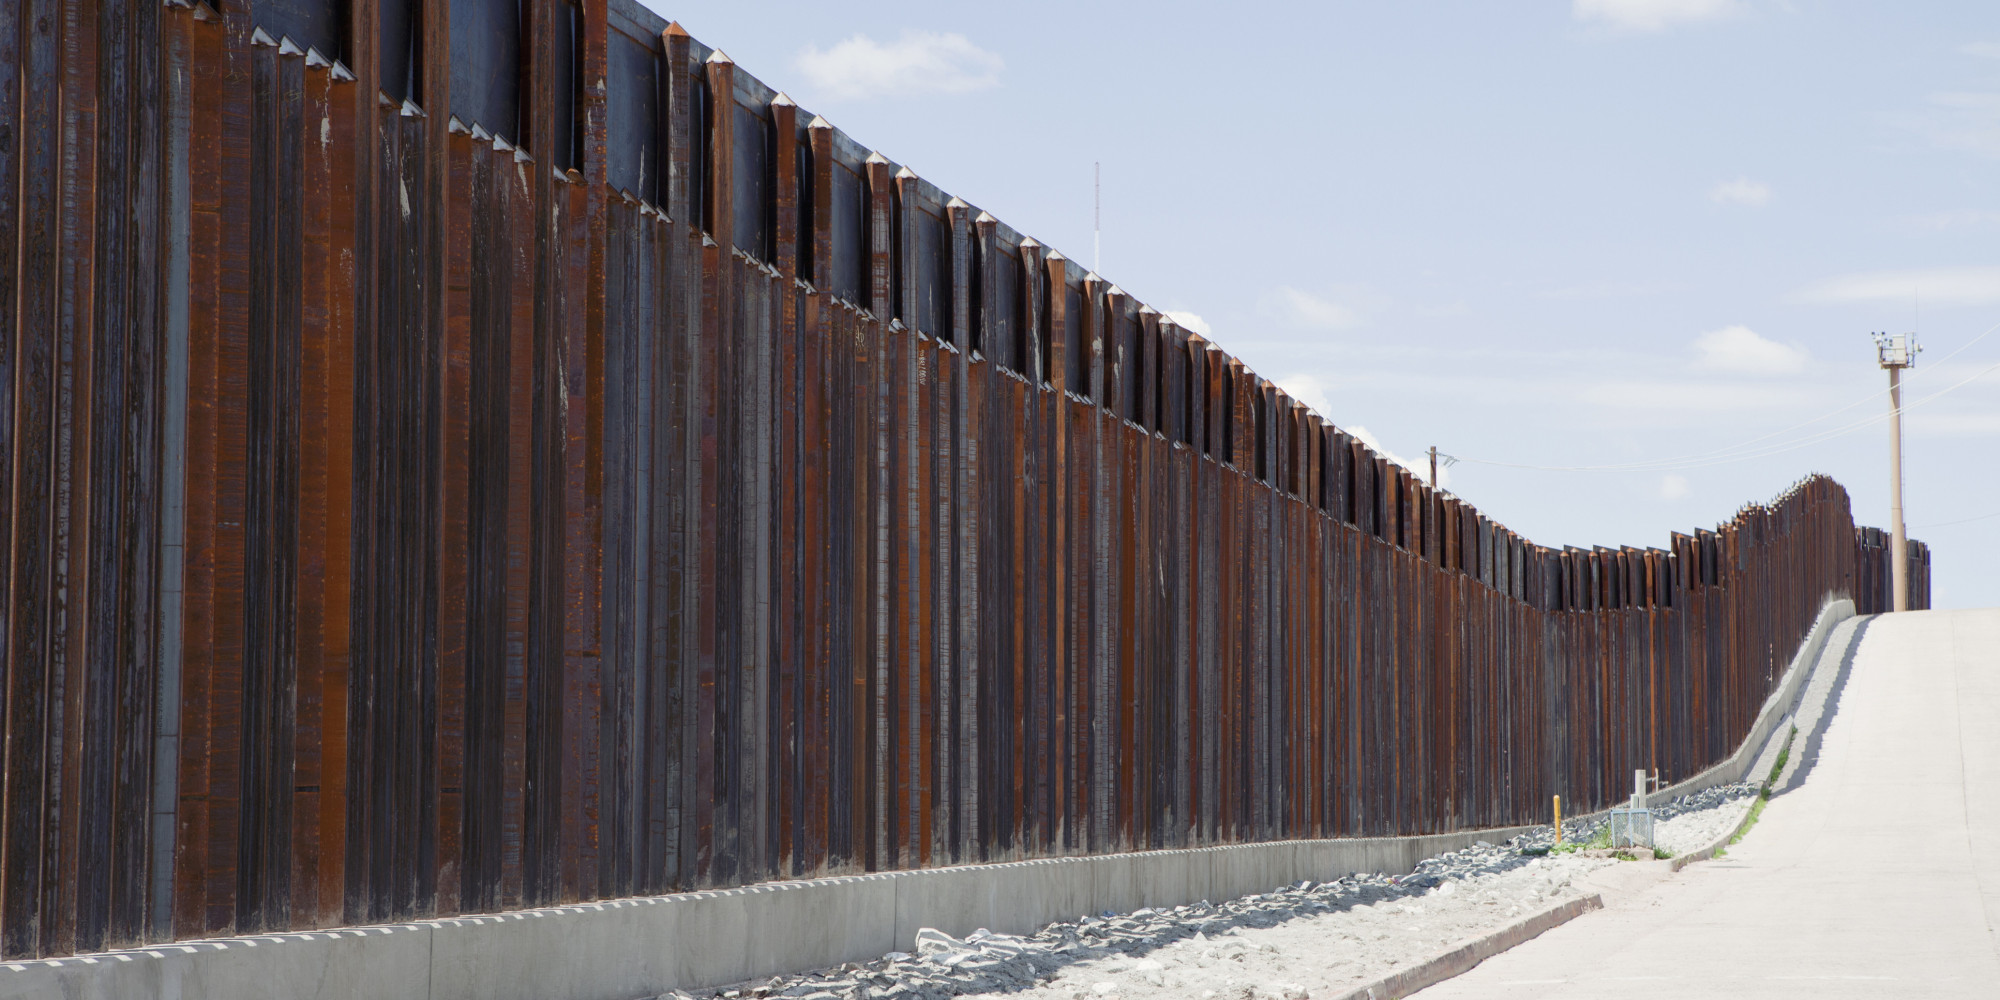 Barrier fence in Nogales, Arizona